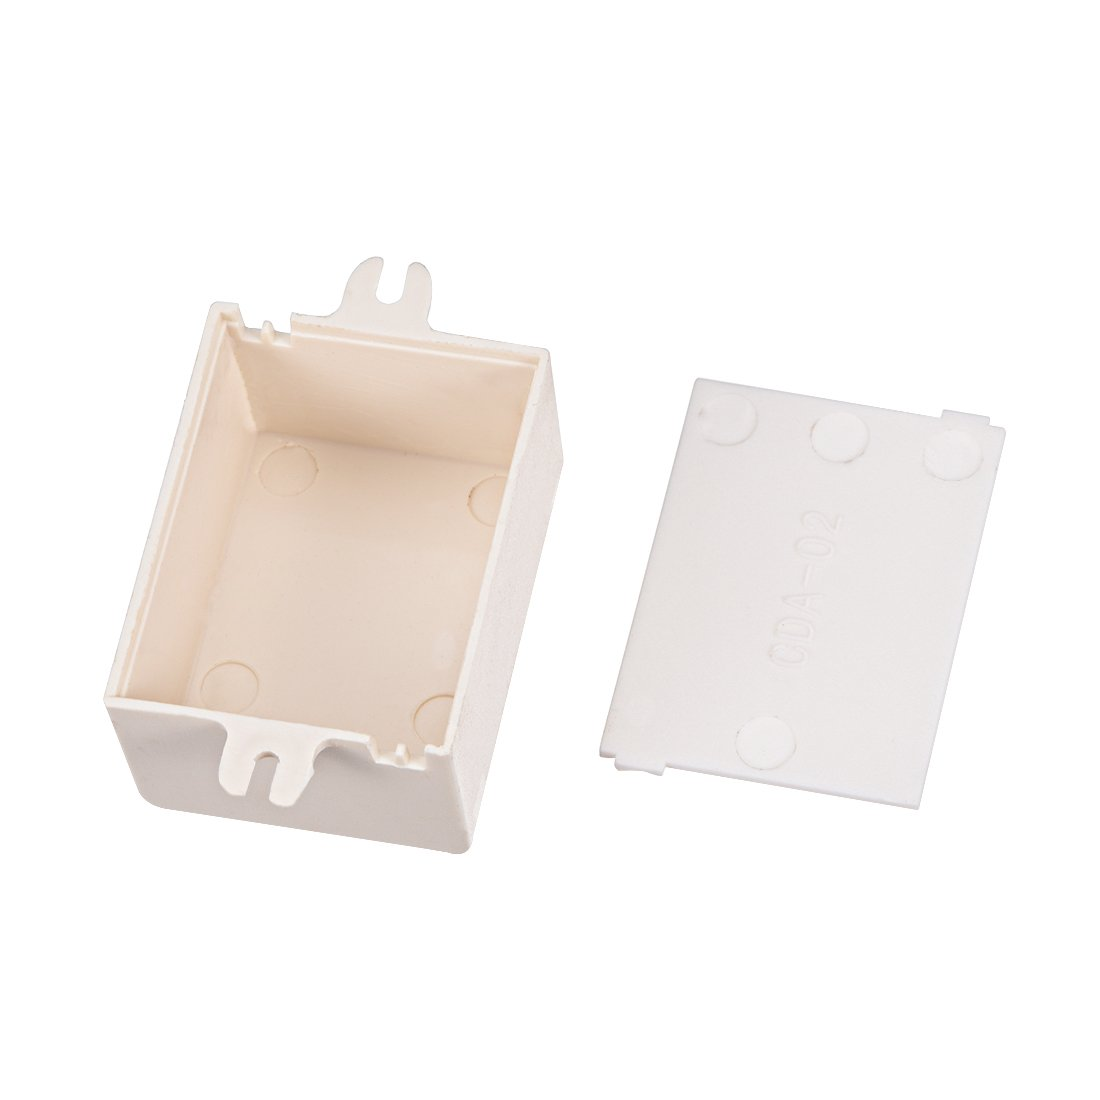 Uxcell a14021900ux0443 10pcs 40x20x11mm Power Project Enclose Case Junction Box Pack of 10